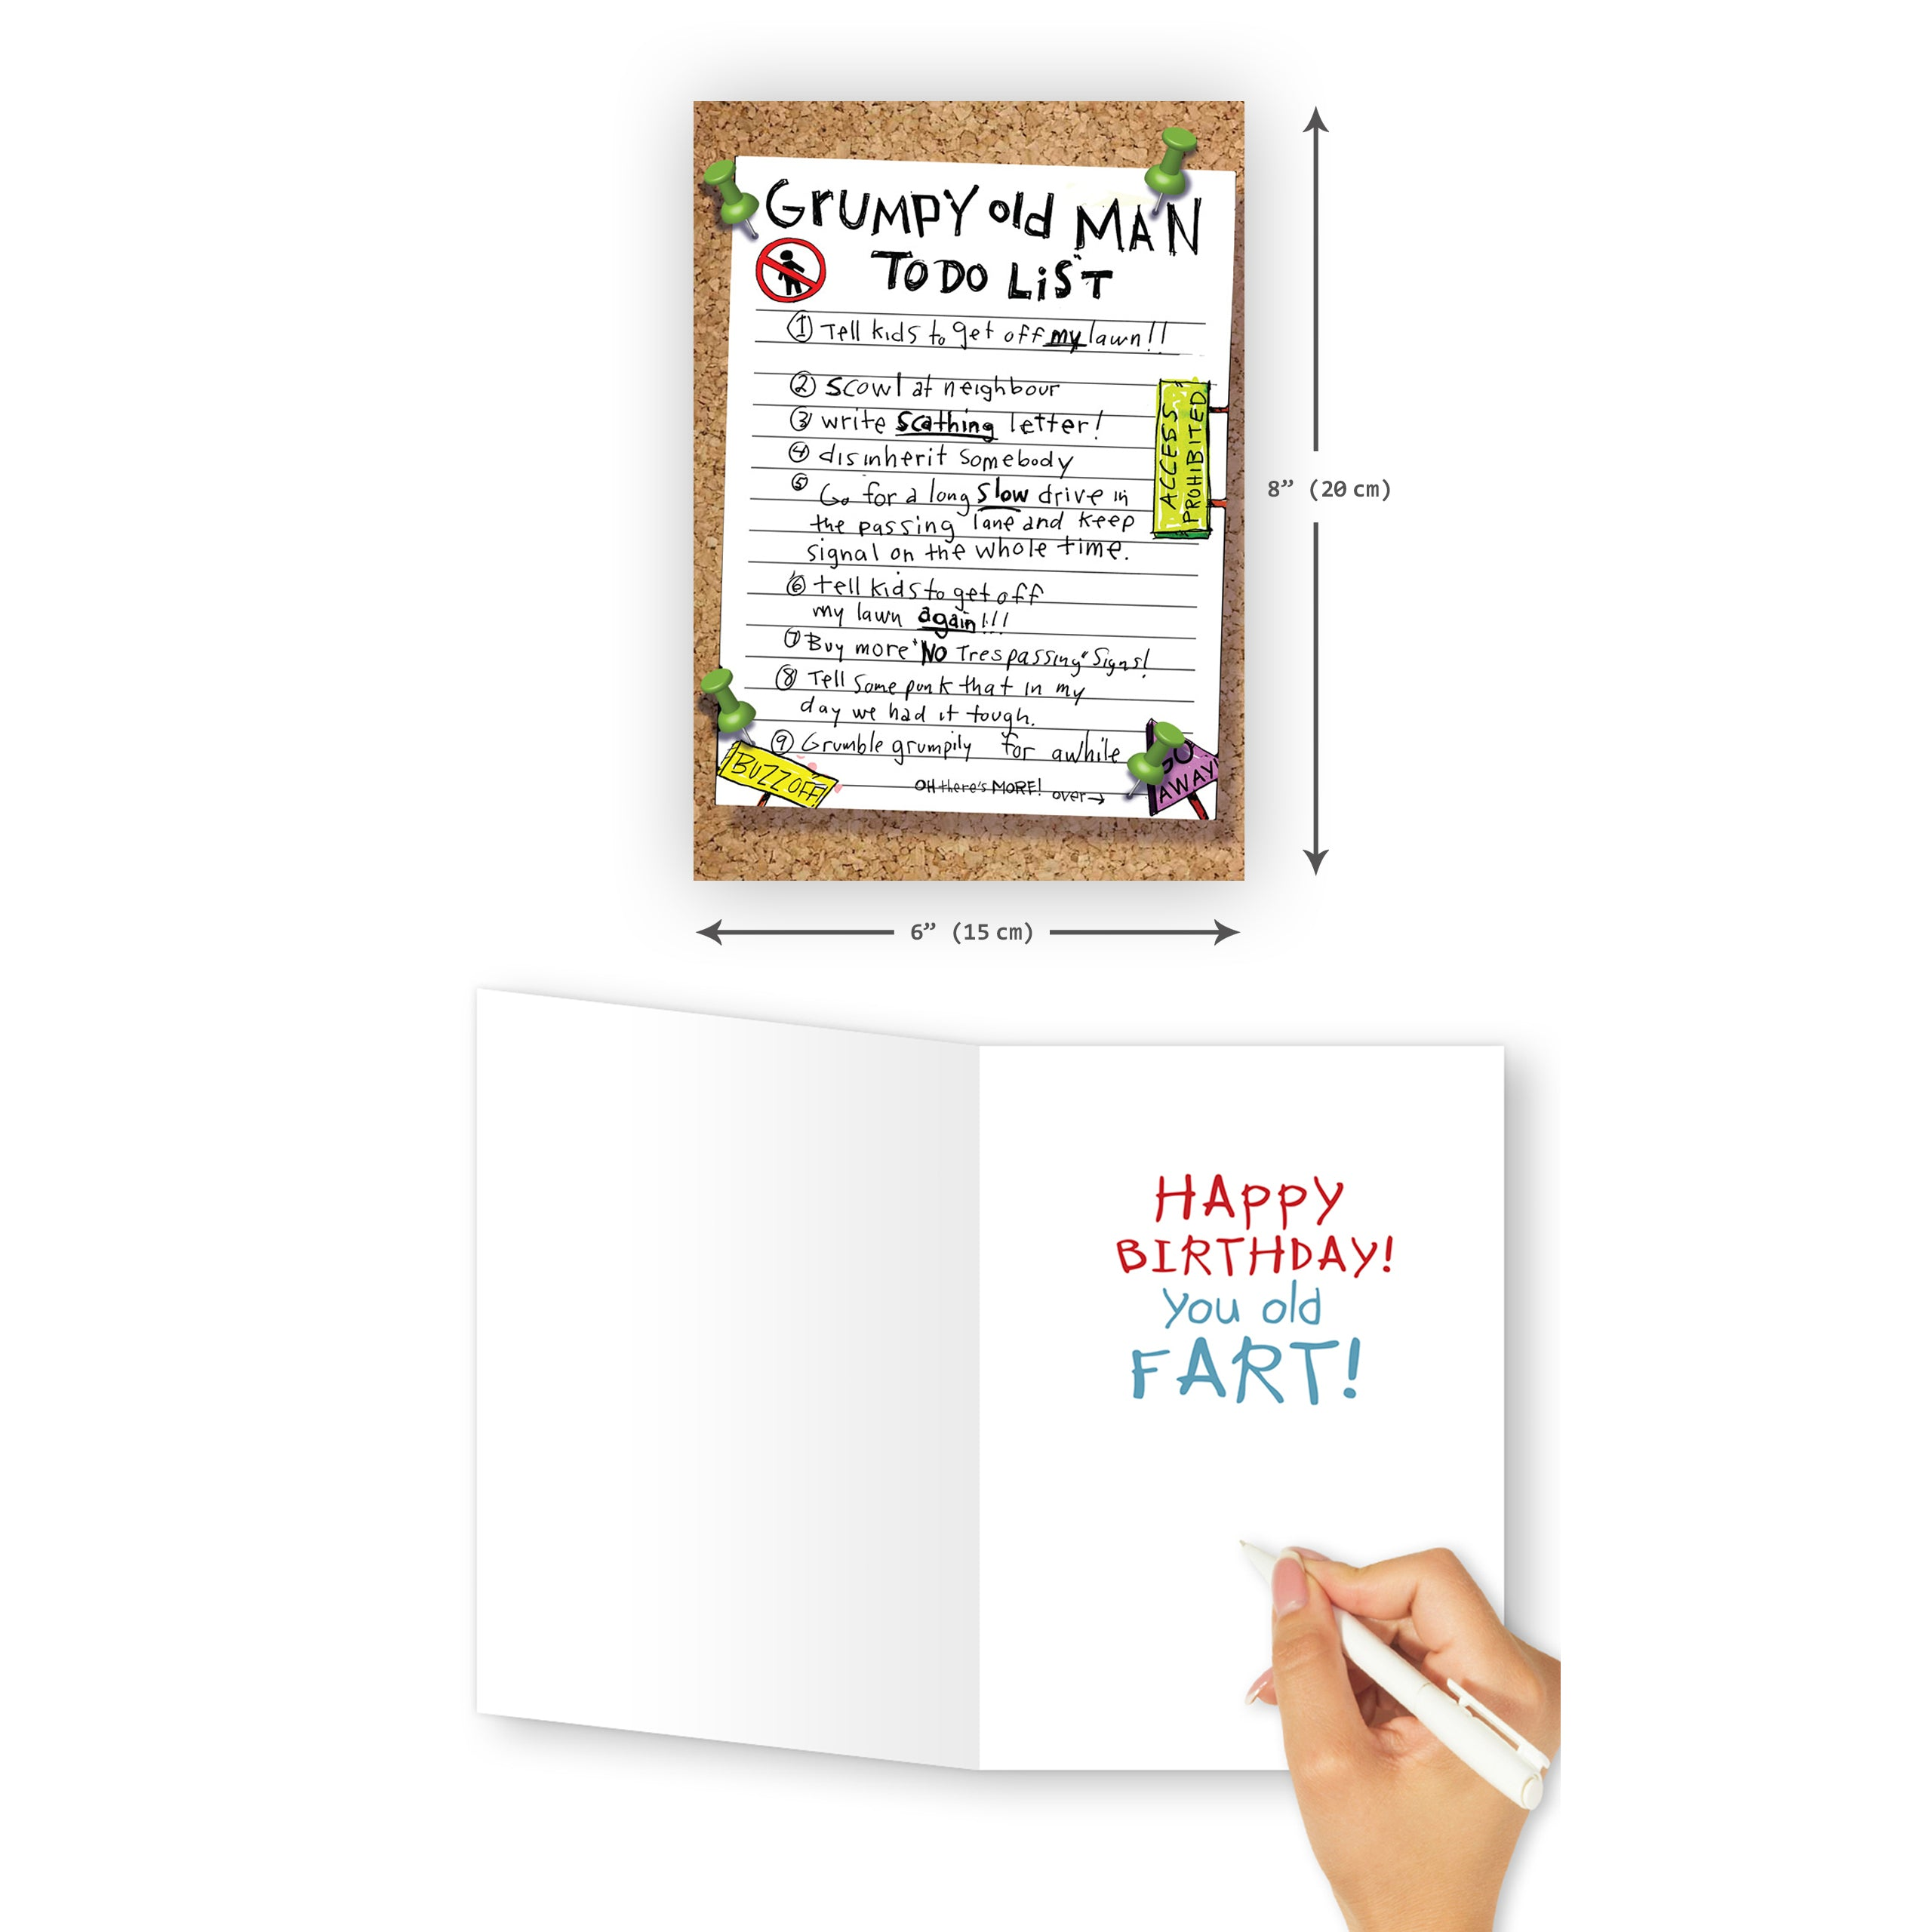 'Grumpy Old Man' Birthday Card - Northern Cards